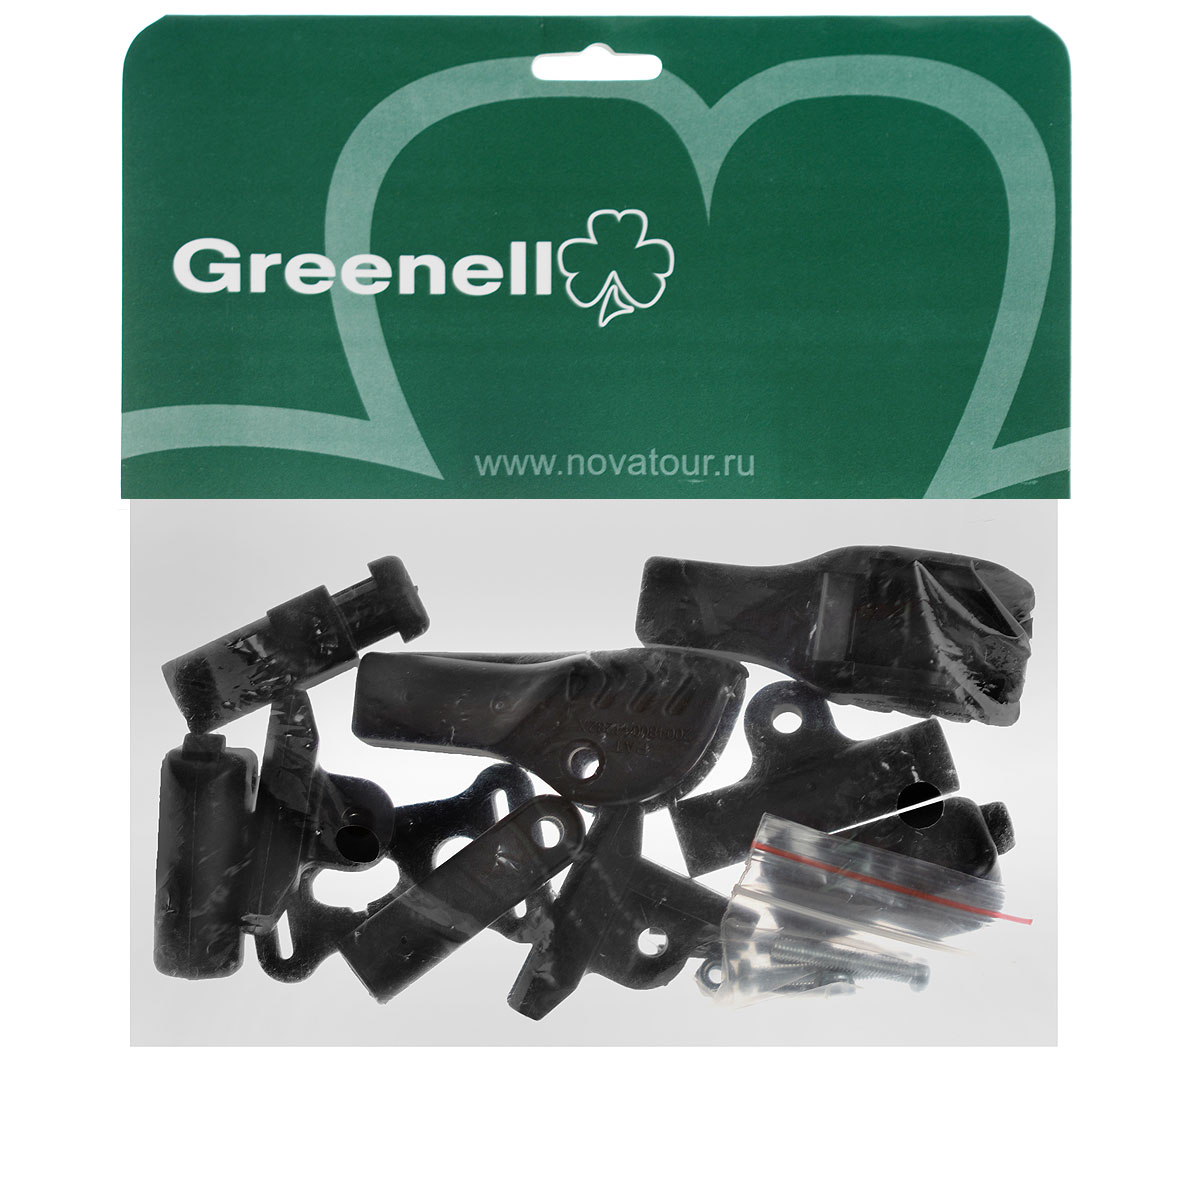 Ремкомплект Greenell №1, для палаток: Aughris 2, Castlerea 4, Clare 3, Dingle 3, Dingle light 3, Howth 4, Larne 2, Private, Tralee 2, Tralee 3 платье other bb 5536 2015 1 2 3 4